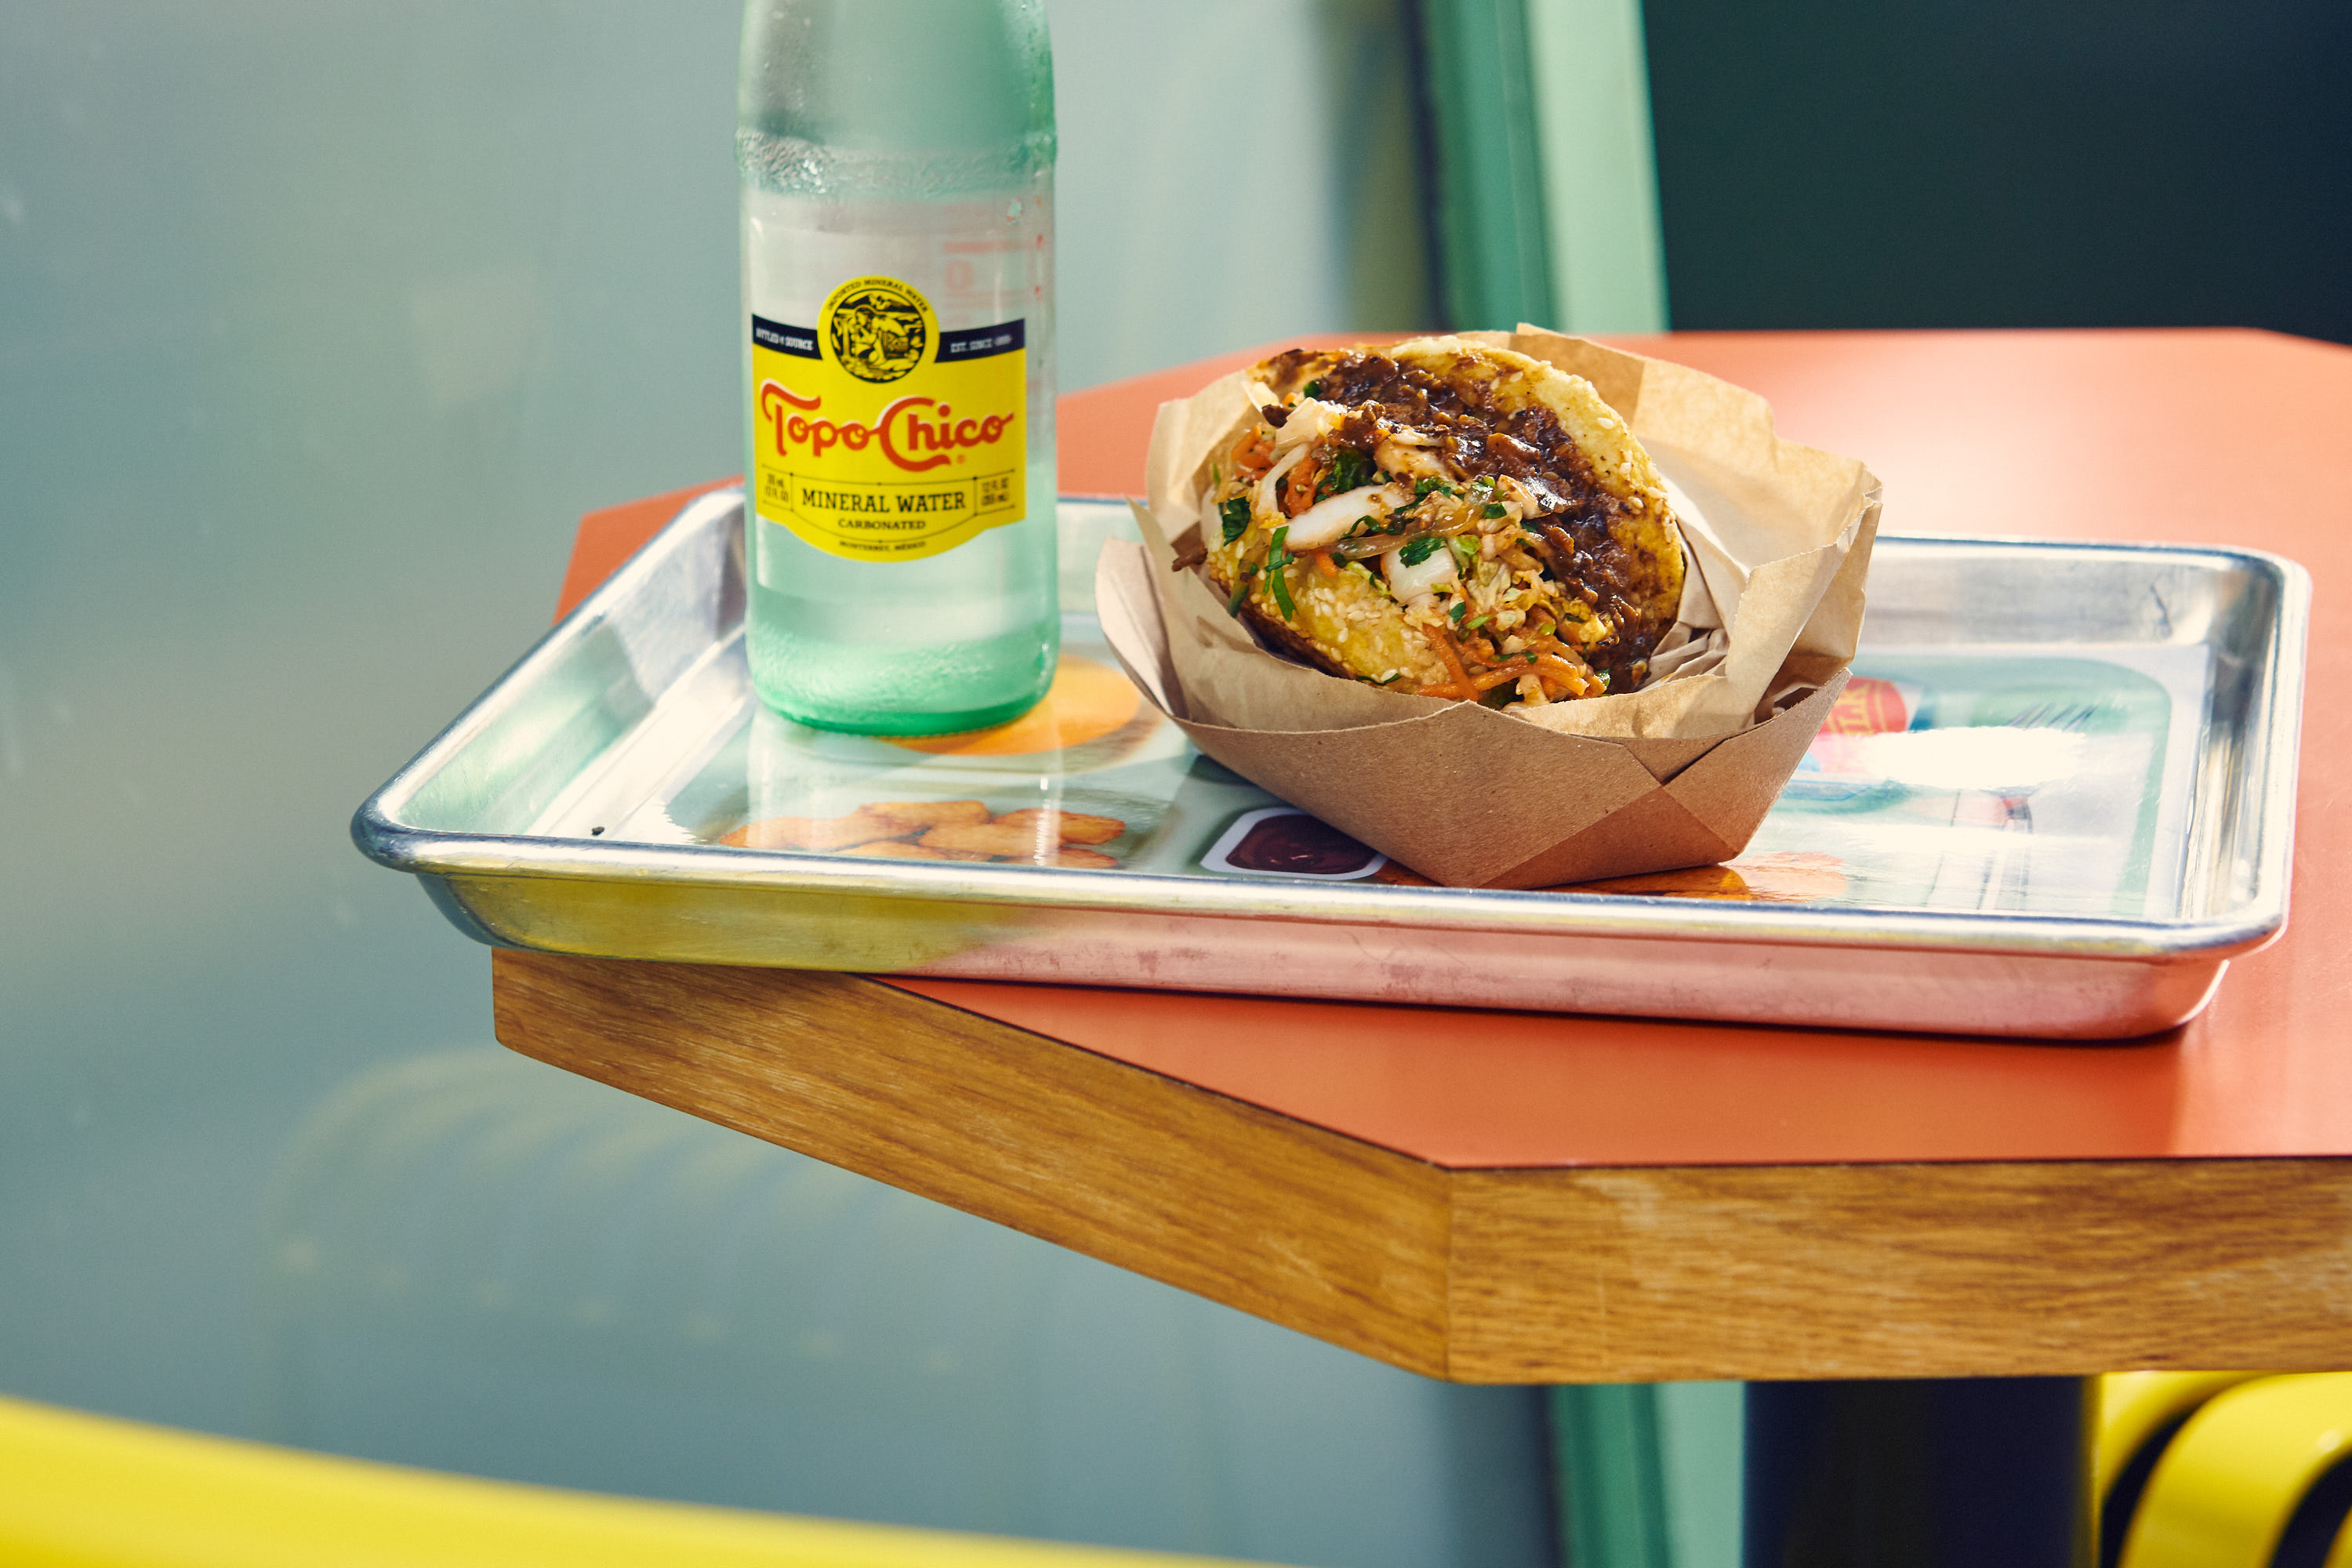 A mushroom Sloppy Joe is shot from the side; it sits on a metal lunch tray on an orange table; a bottle of Topo Chico stands next to the sandwich